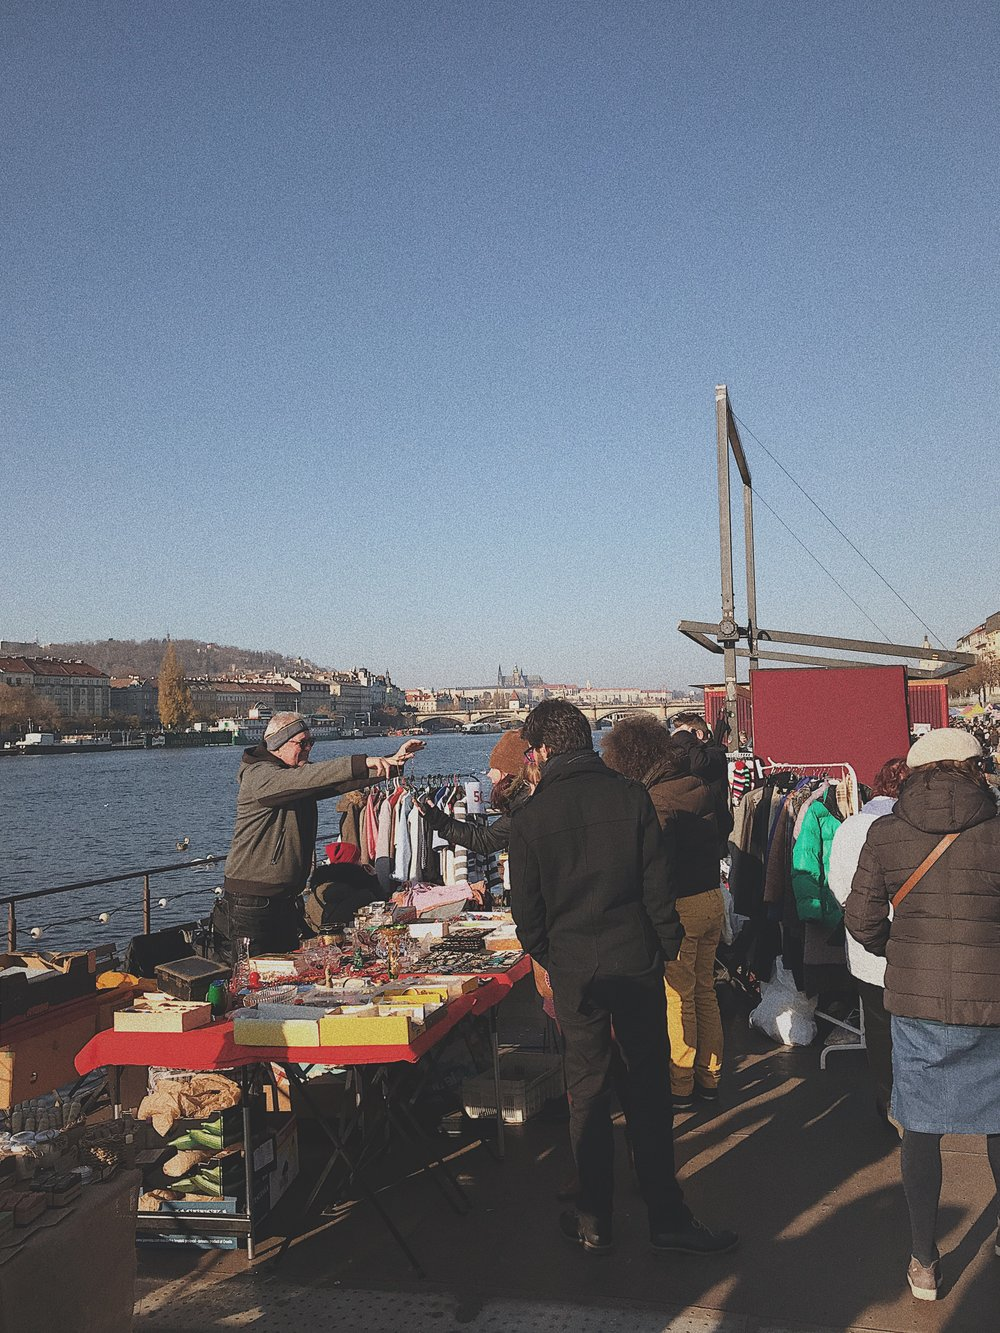 A flea market located on a boat at the Farmer's Market